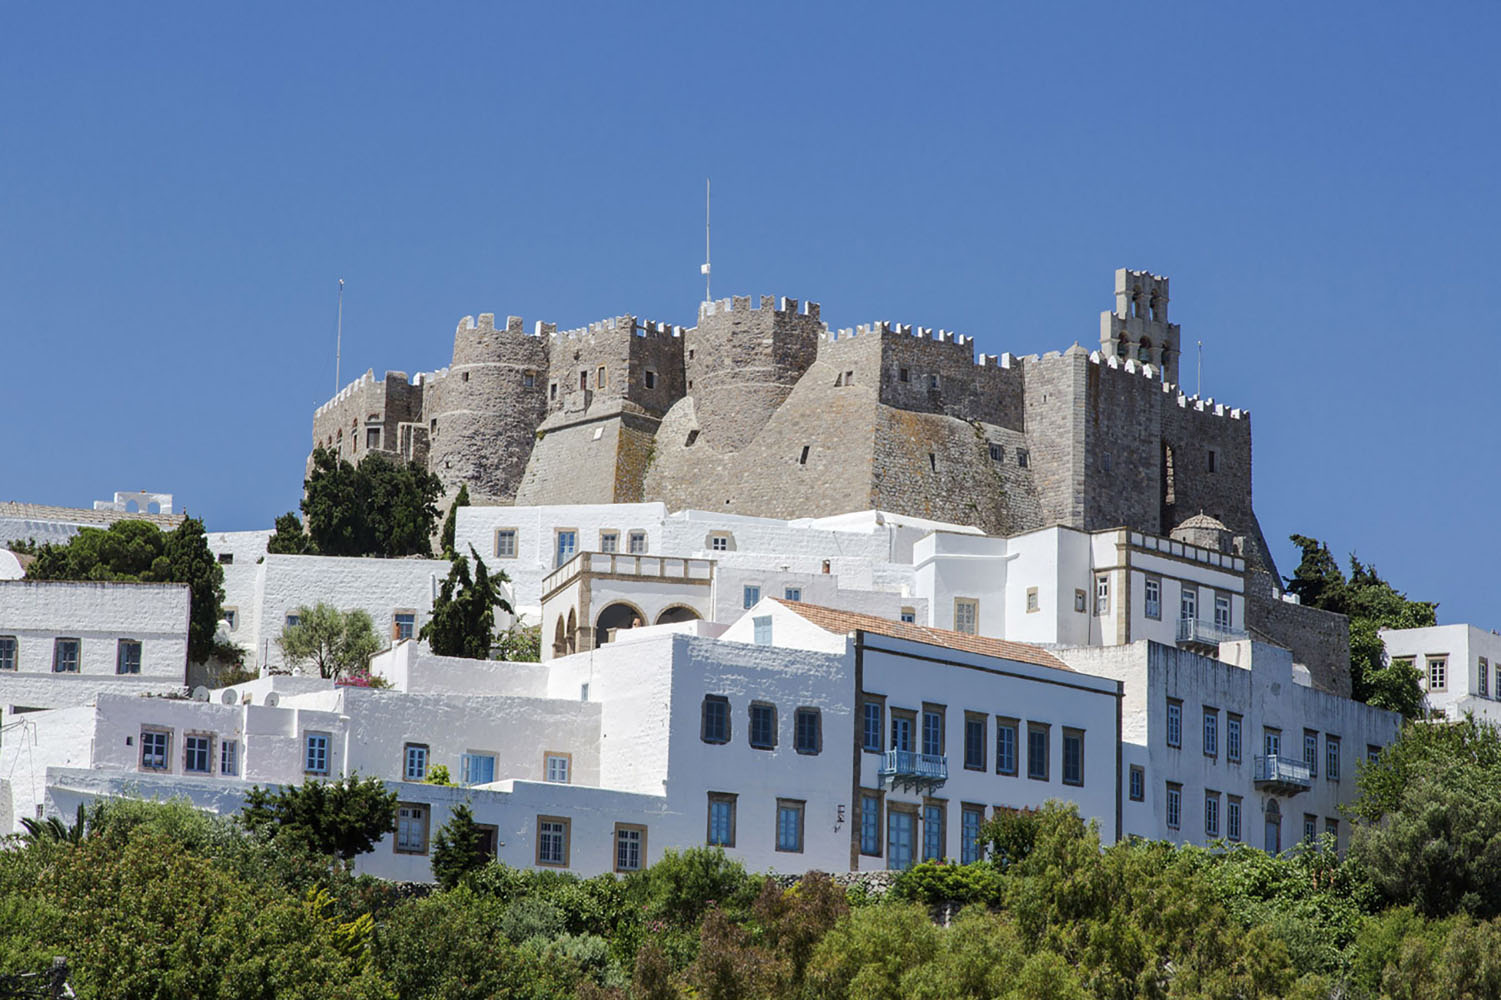 St. John's Monastery in Patmos, Greece.